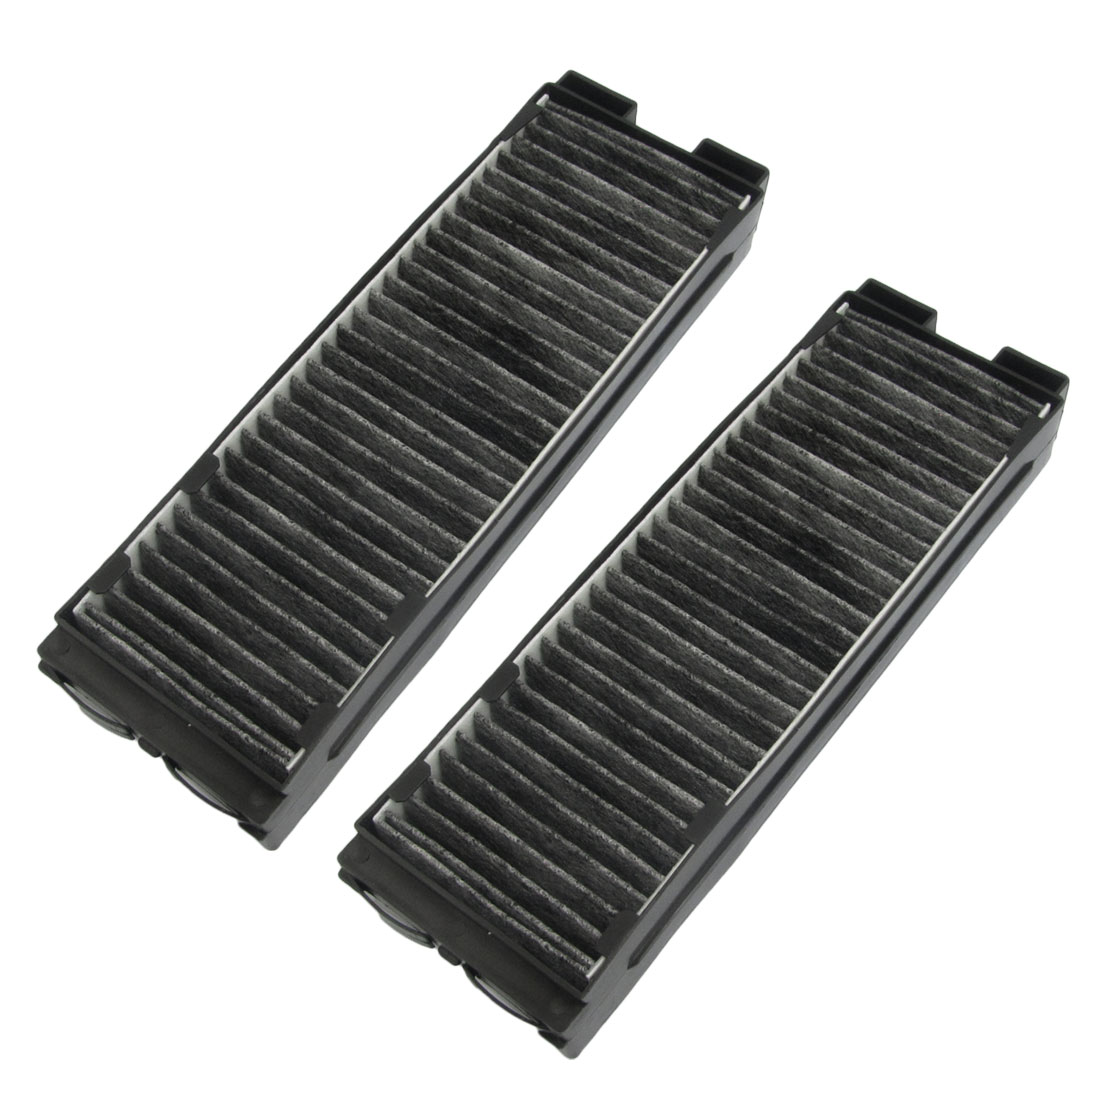 Black Activated Carbon Fiber A/C Cabin Air Filter Set for Nissan Cefiro A32